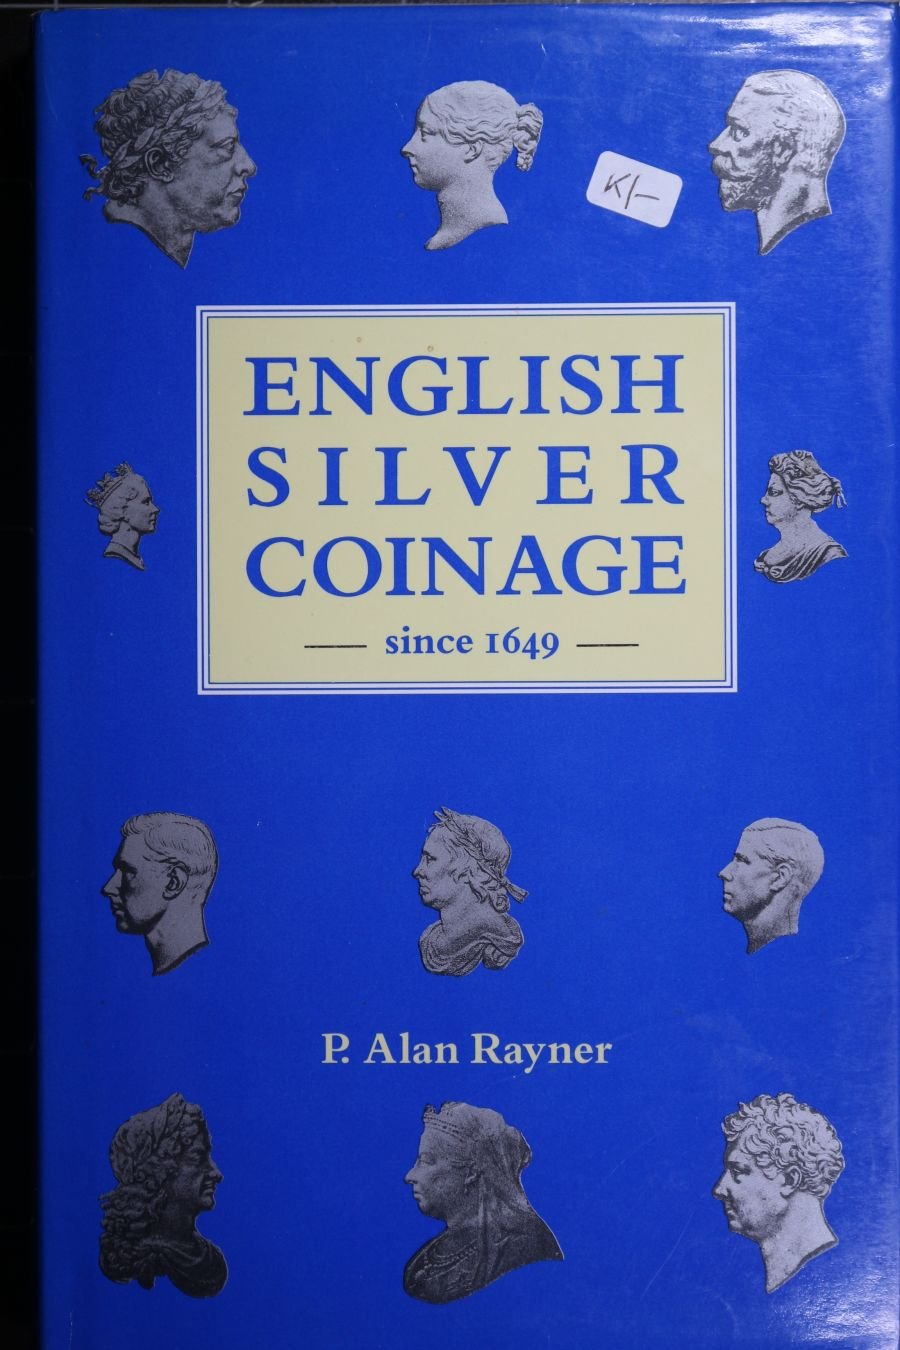 English Silver Coinage since 1649, P. Alan Rayner, Fifth revised edition